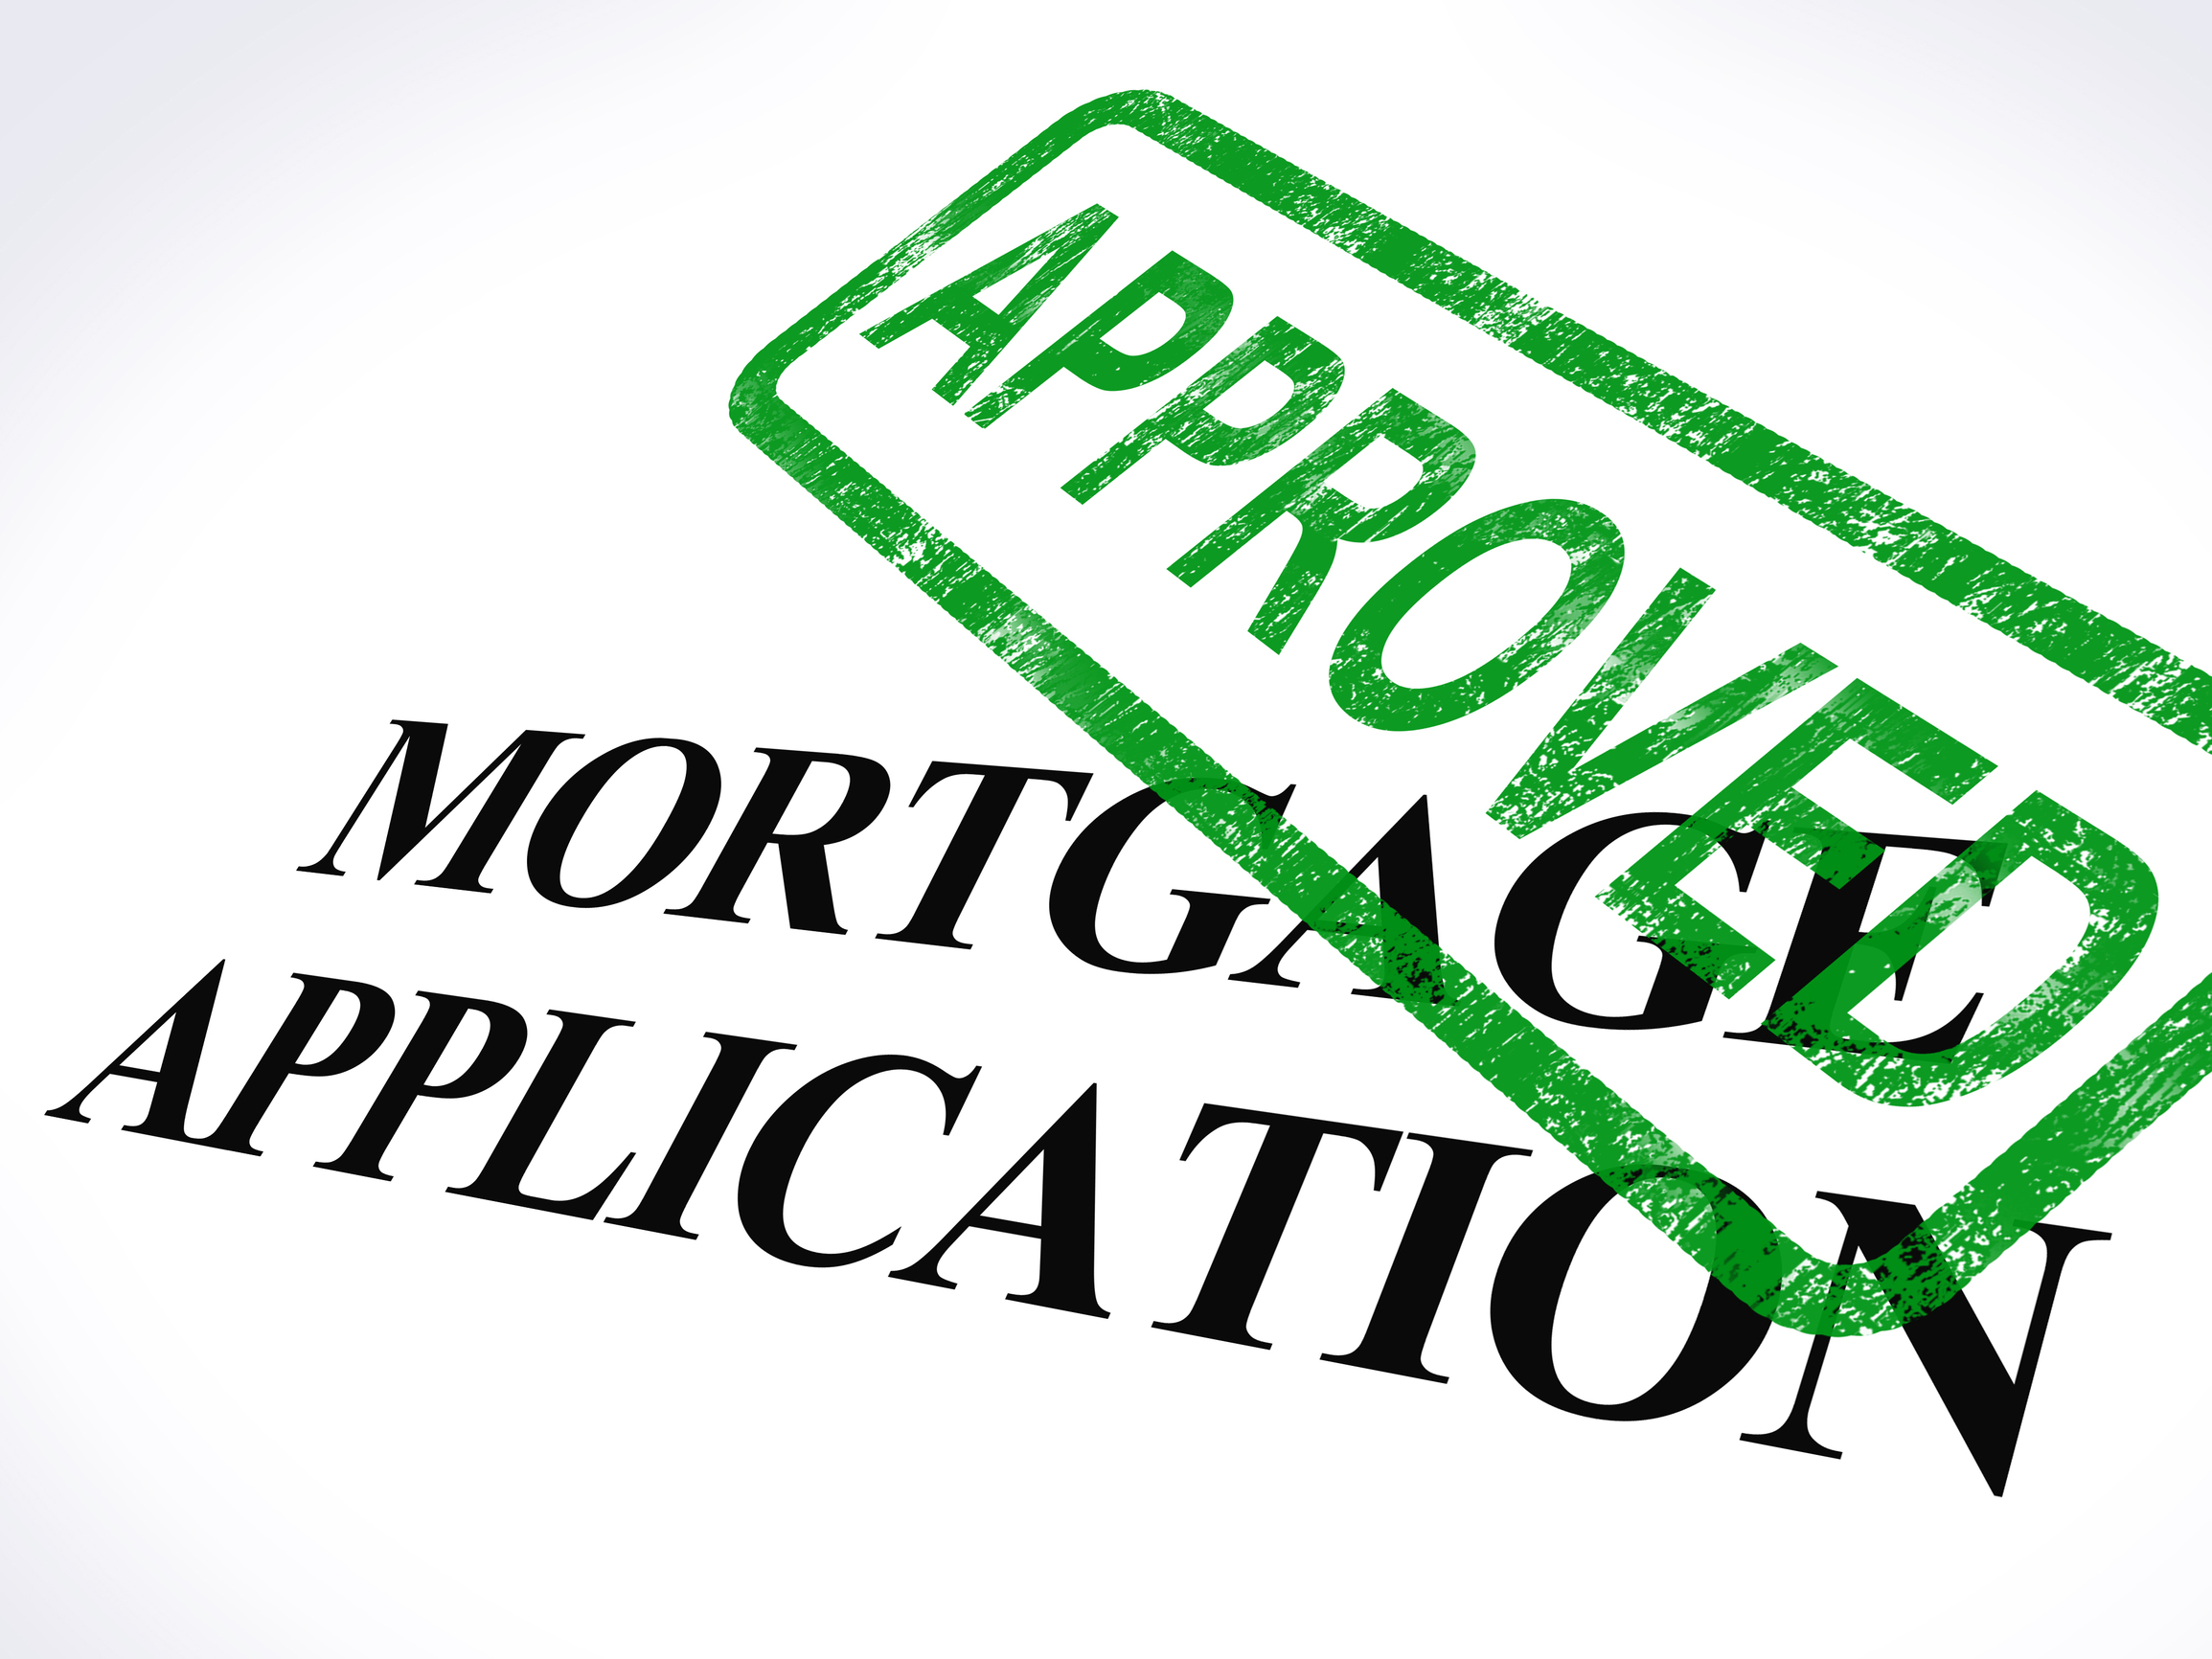 Contracted Worker Approved For Residential Mortgage In 48 hours After Bank Decline